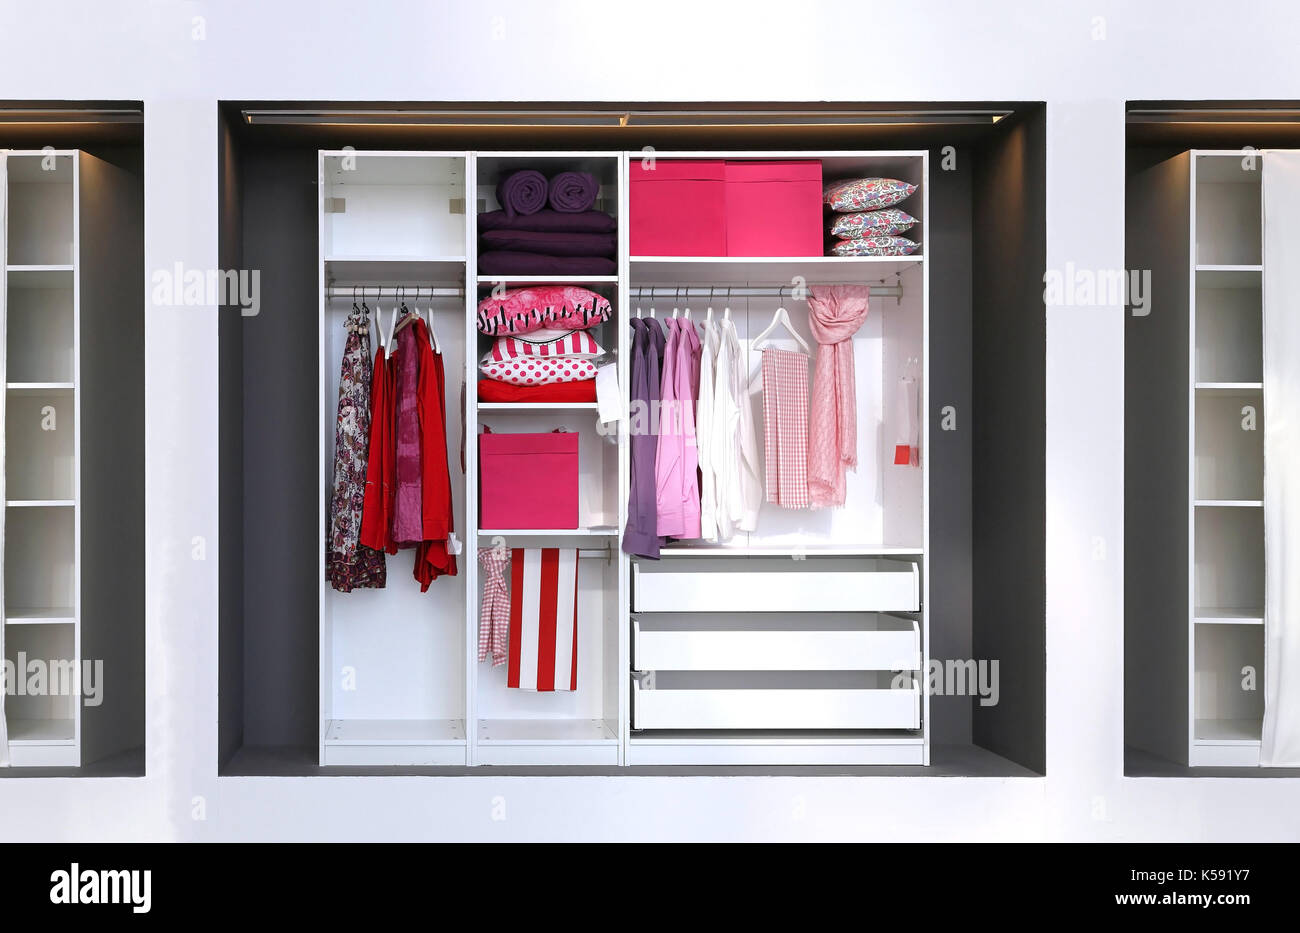 Inside Open Closet With Female Clothes And Accessories In Pink Colour Scheme